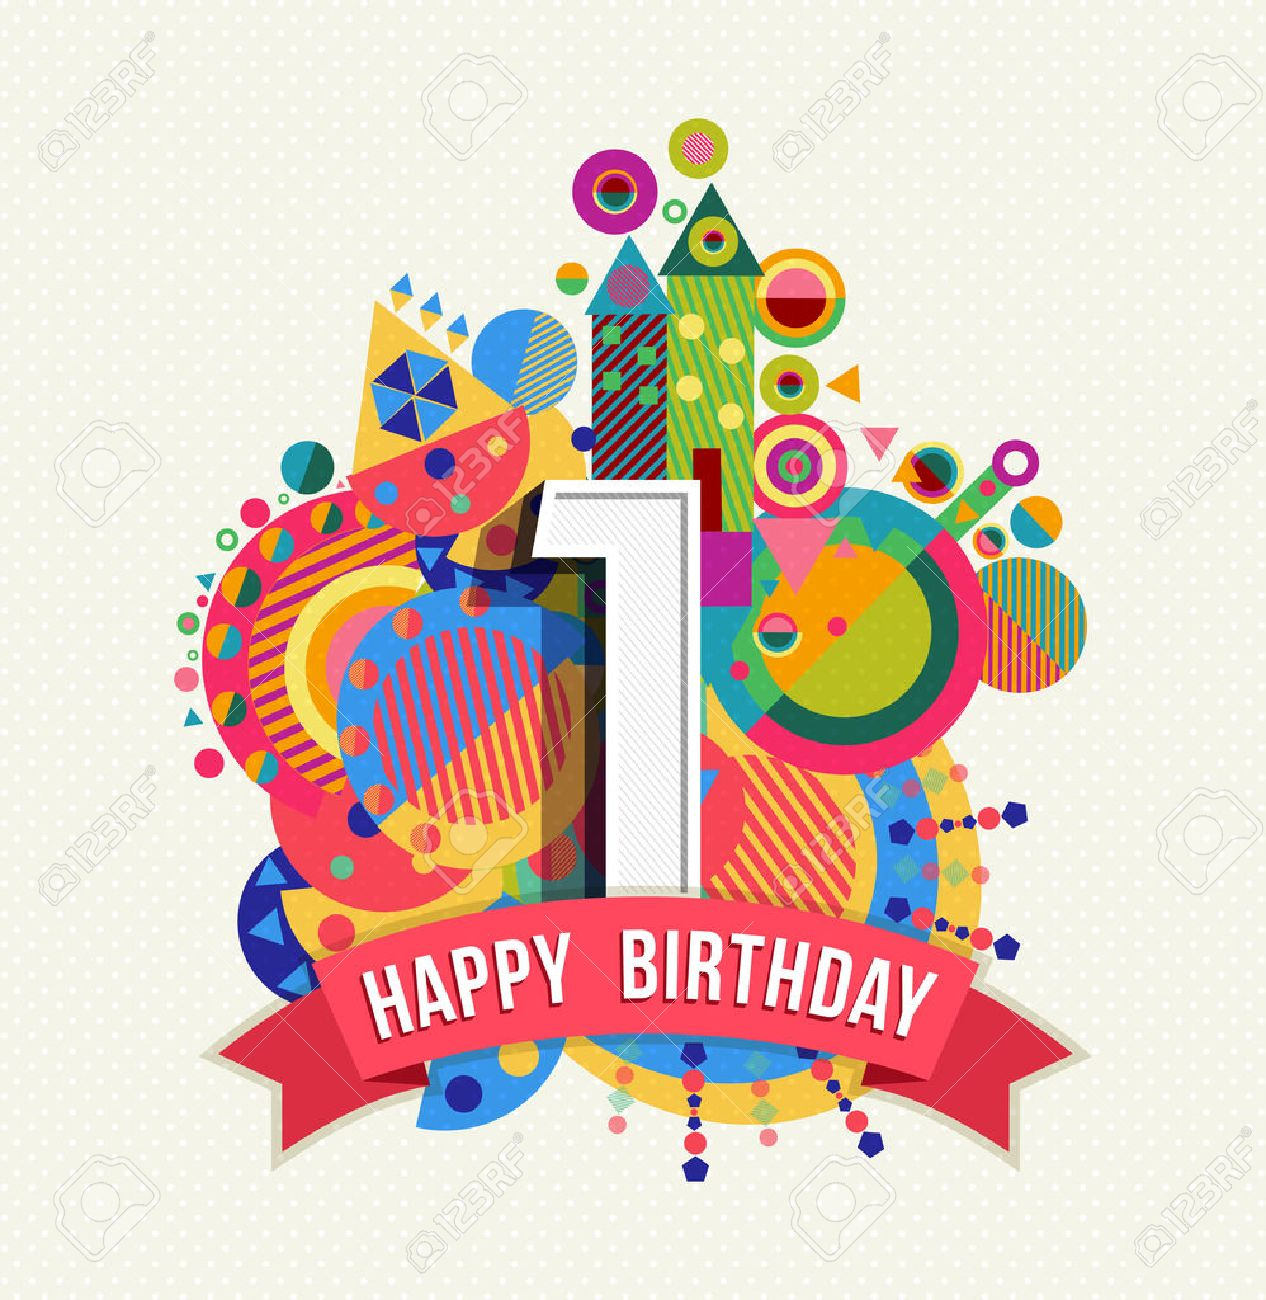 Happy Birthday one 1 year, fun design with number, text label and colorful geometry element. Ideal for poster or greeting card. EPS10 vector. - 50199042